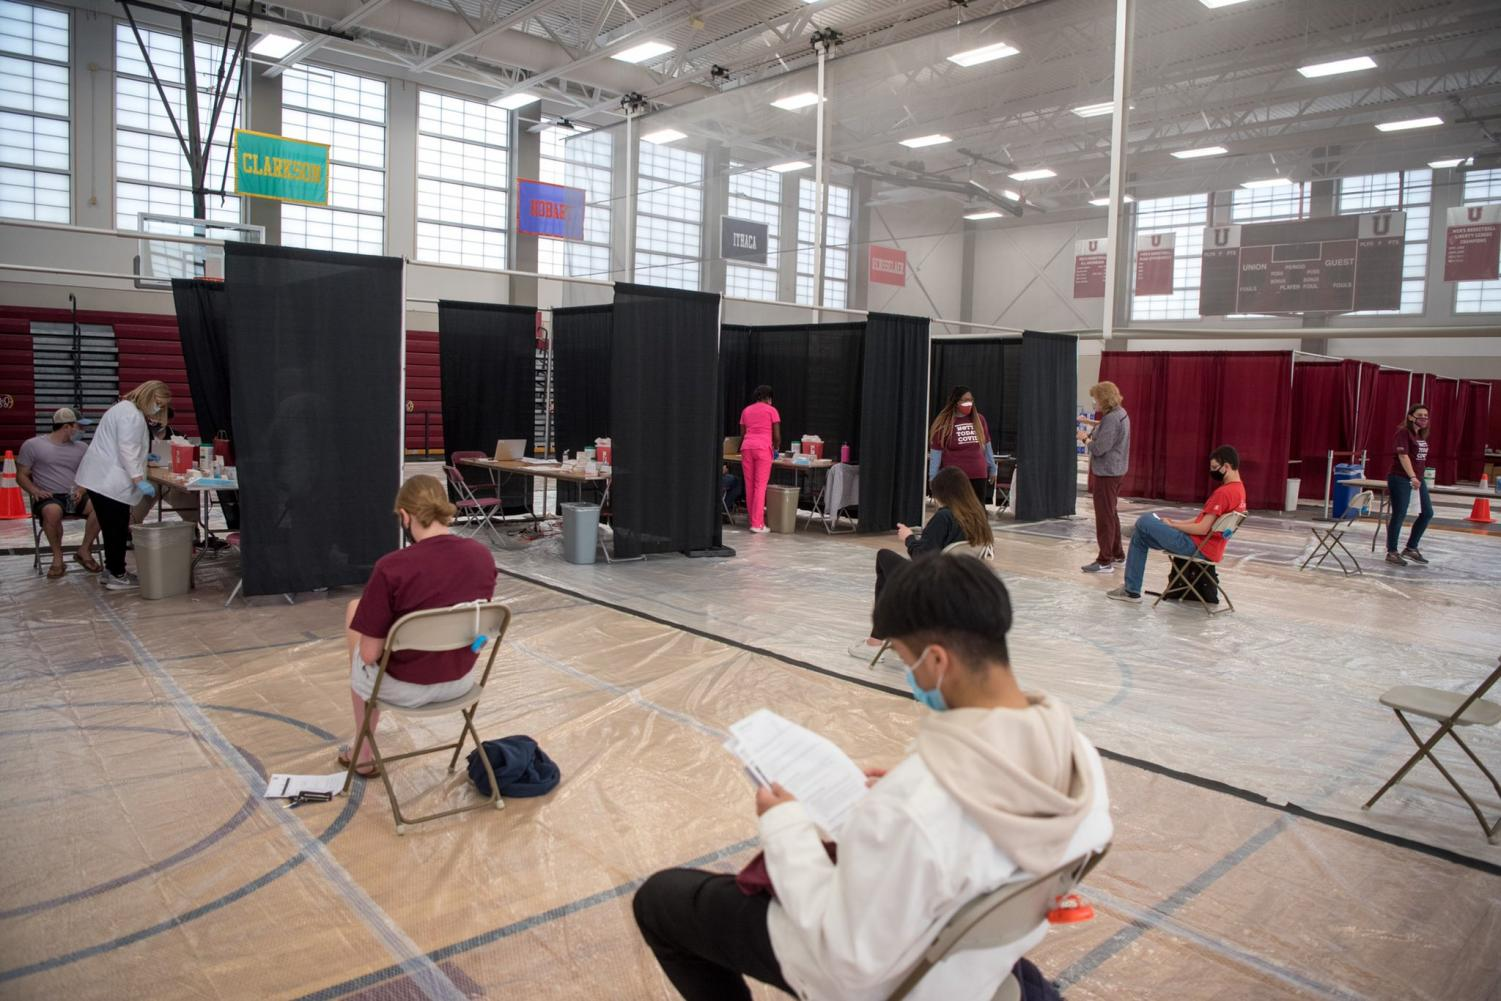 Students during the vaccination process at the Viniar Athletic Center. Courtesy of the Union College official Twitter account.